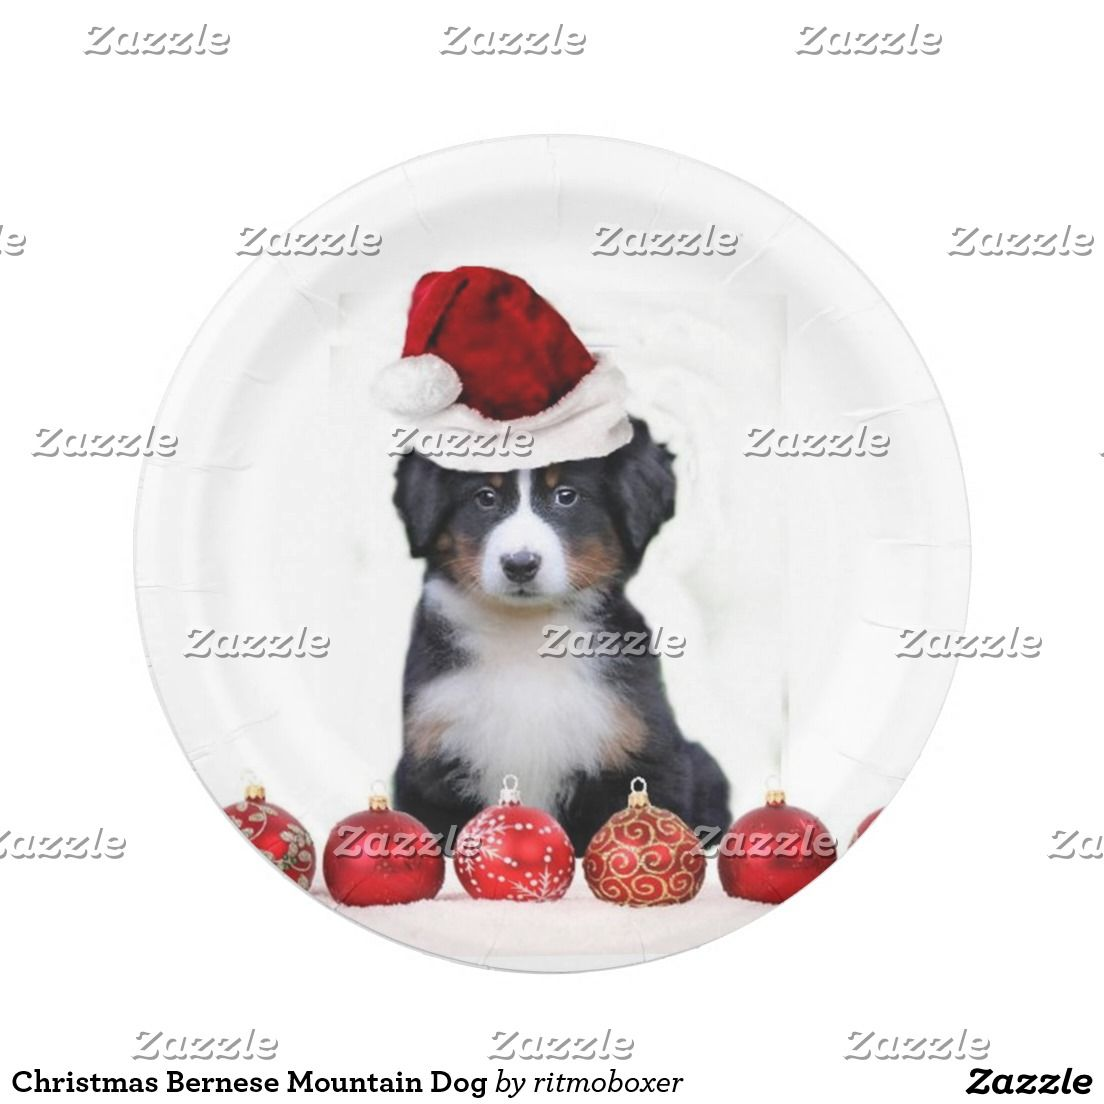 Christmas Bernese Mountain Dog Paper Plate  sc 1 st  Pinterest & Christmas Bernese Mountain Dog Paper Plate | Bernese mountain dogs ...